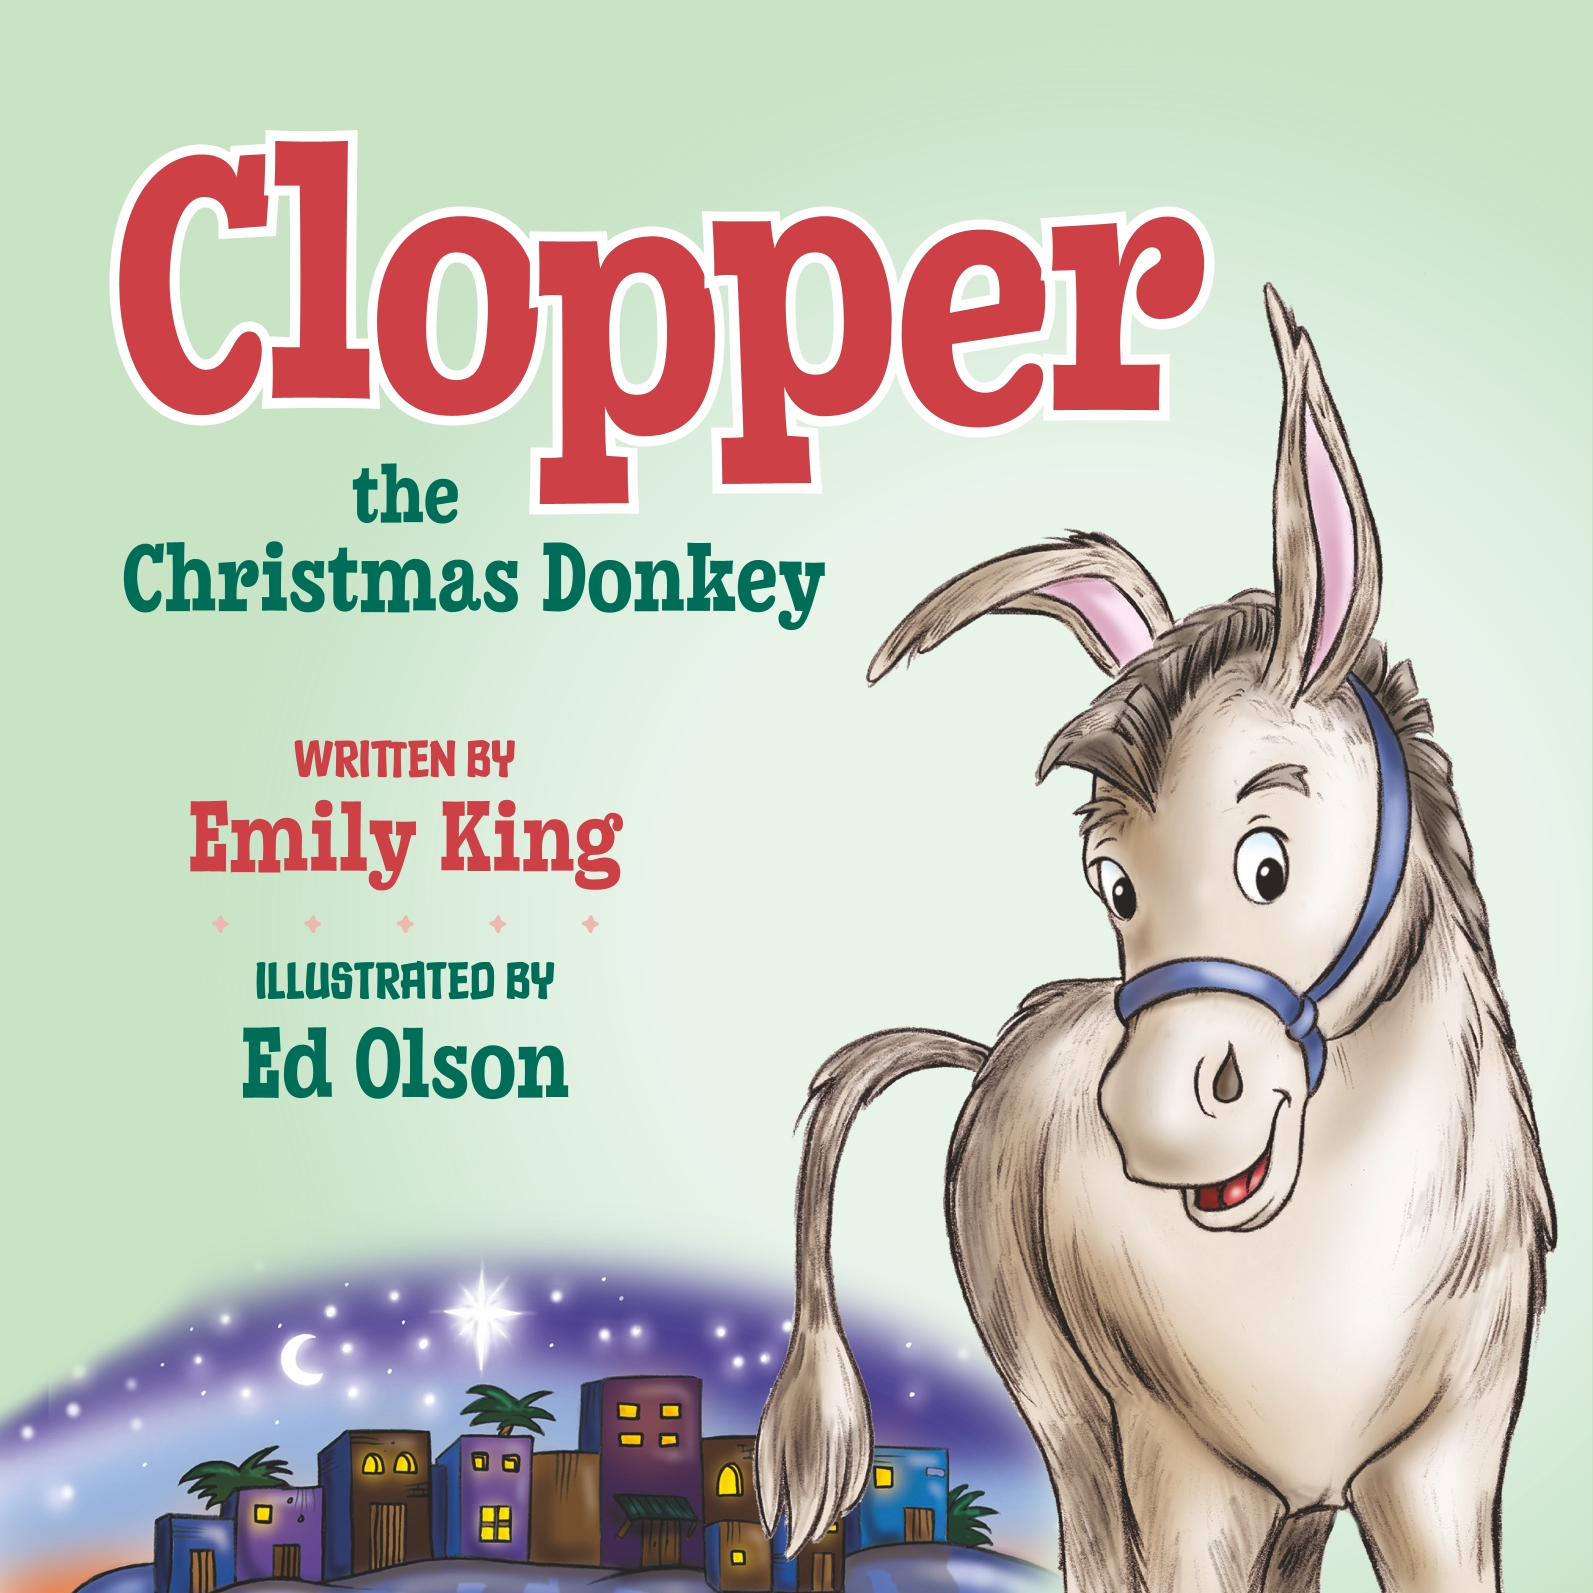 Clopper, the Christmas Donkey